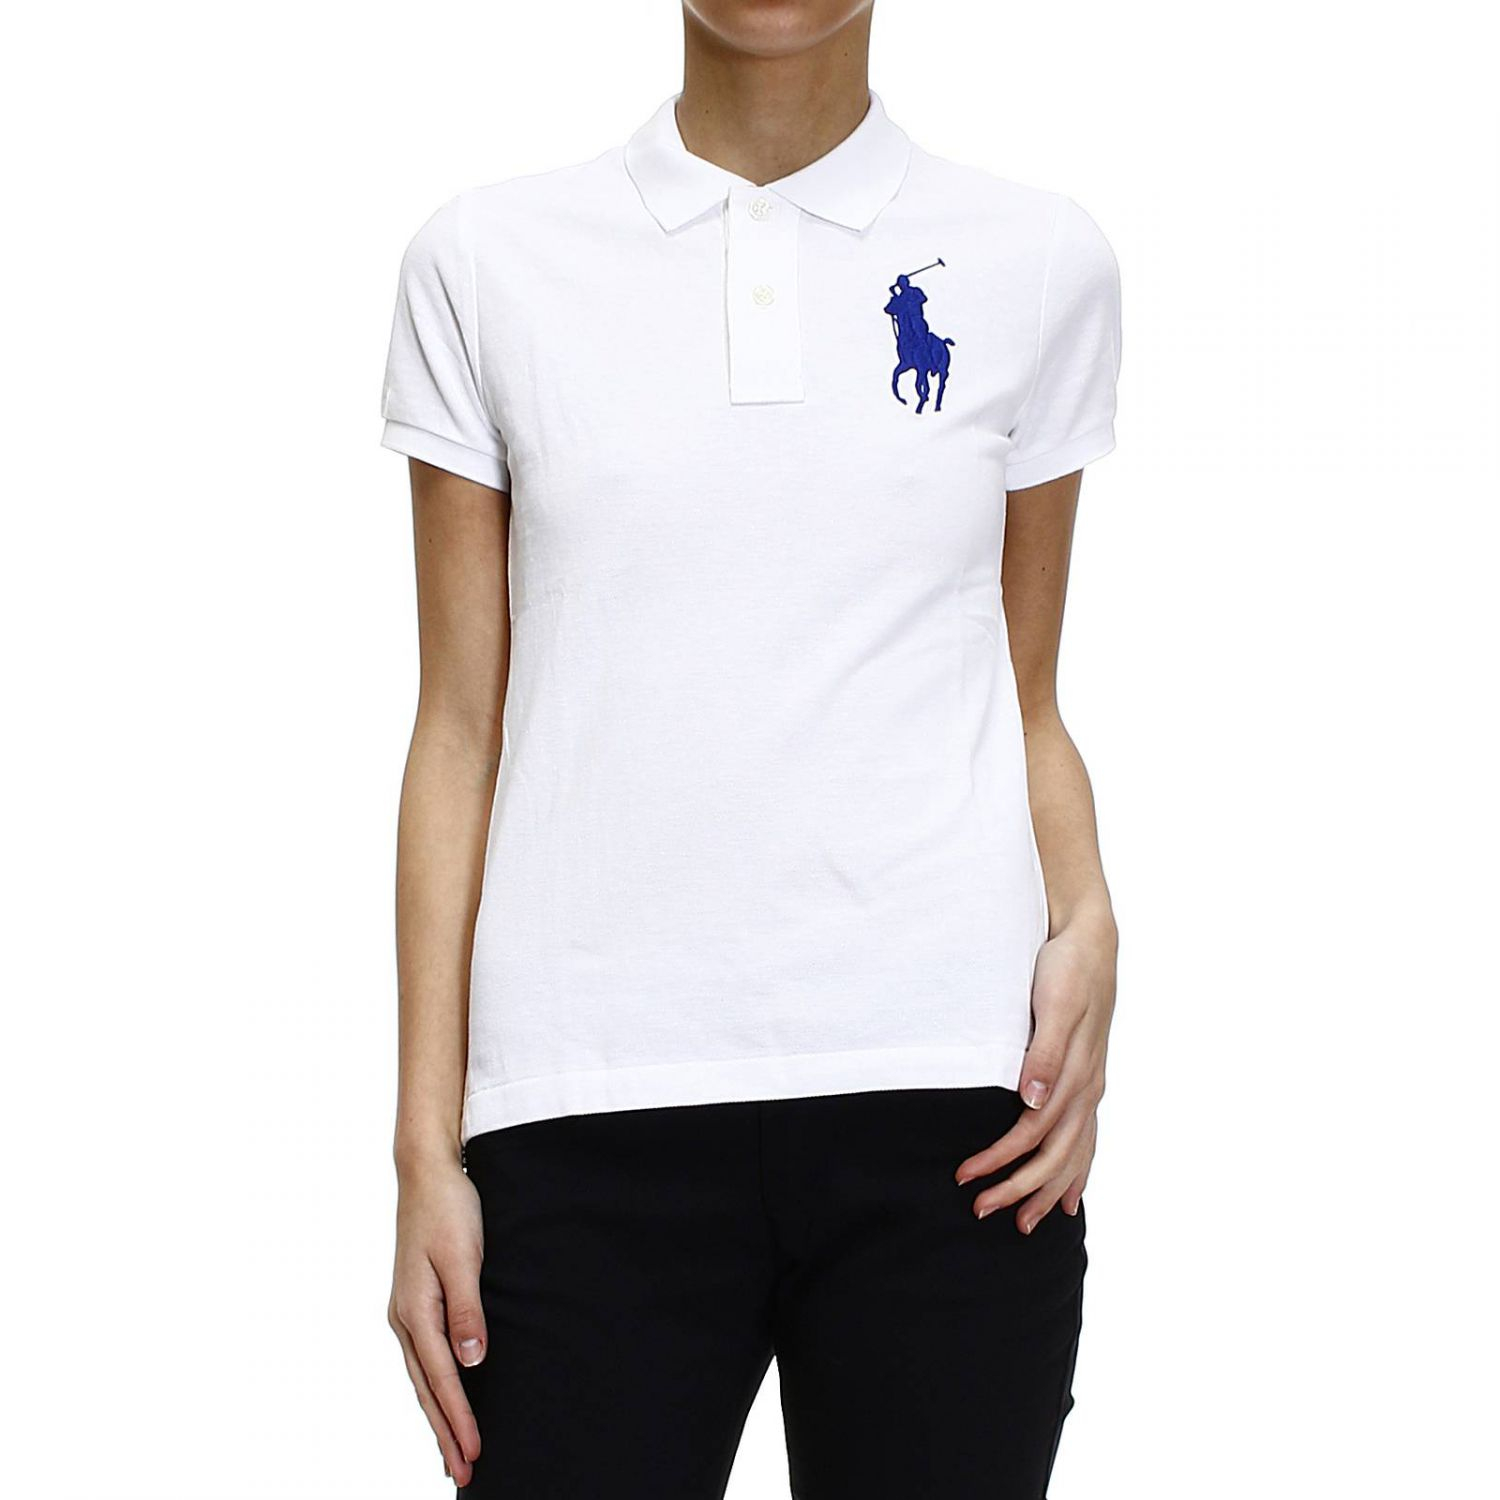 Buy Ralph Lauren Women\u0026#39;s White T-Shirt Polo Half Sleeve Nido D\u0026#39;Ape Big Pony, starting at $79 from Giglio US. Similar products also available. SALE now on!